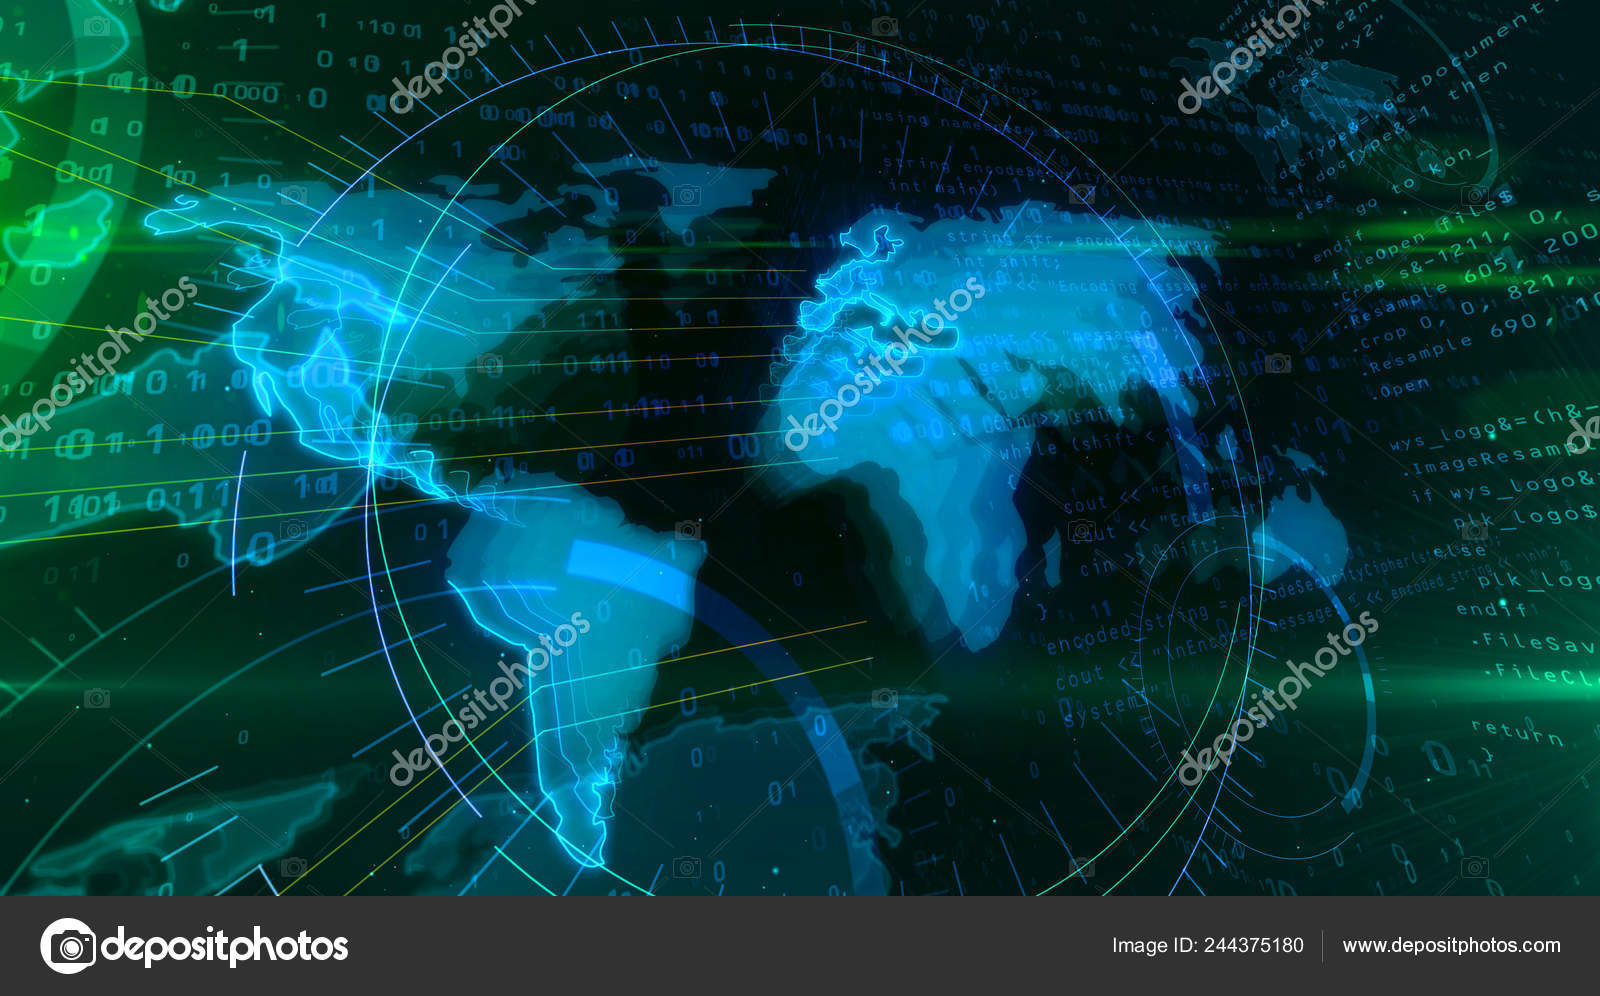 depositphotos_244375180-stock-photo-global-networking-concept-world-map Siber Toplumda Mahremiyetin Dönüşümü